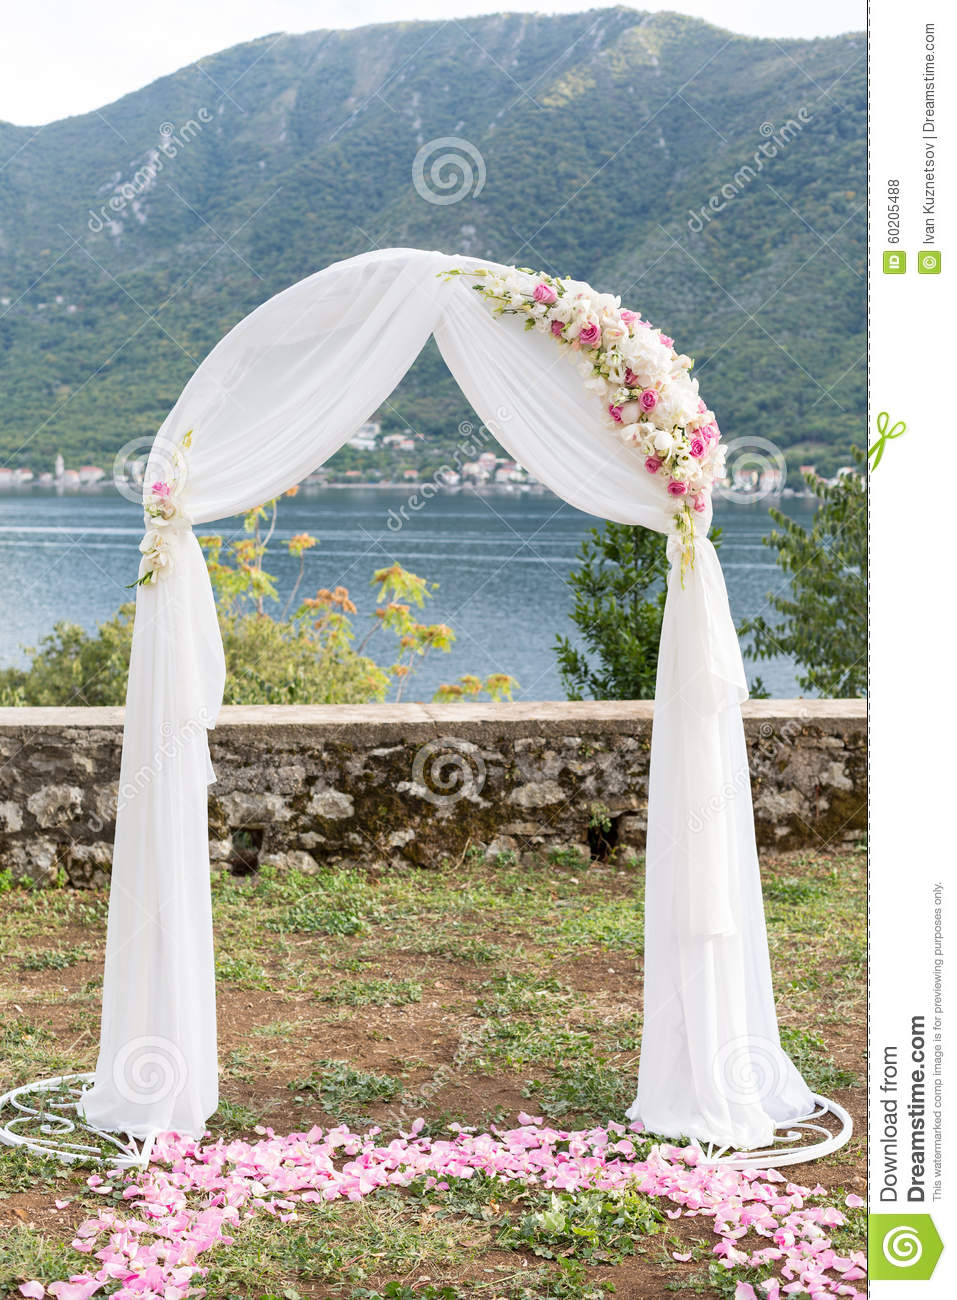 Wedding arch decorated with flowers outdoors stock photo image of download comp junglespirit Images